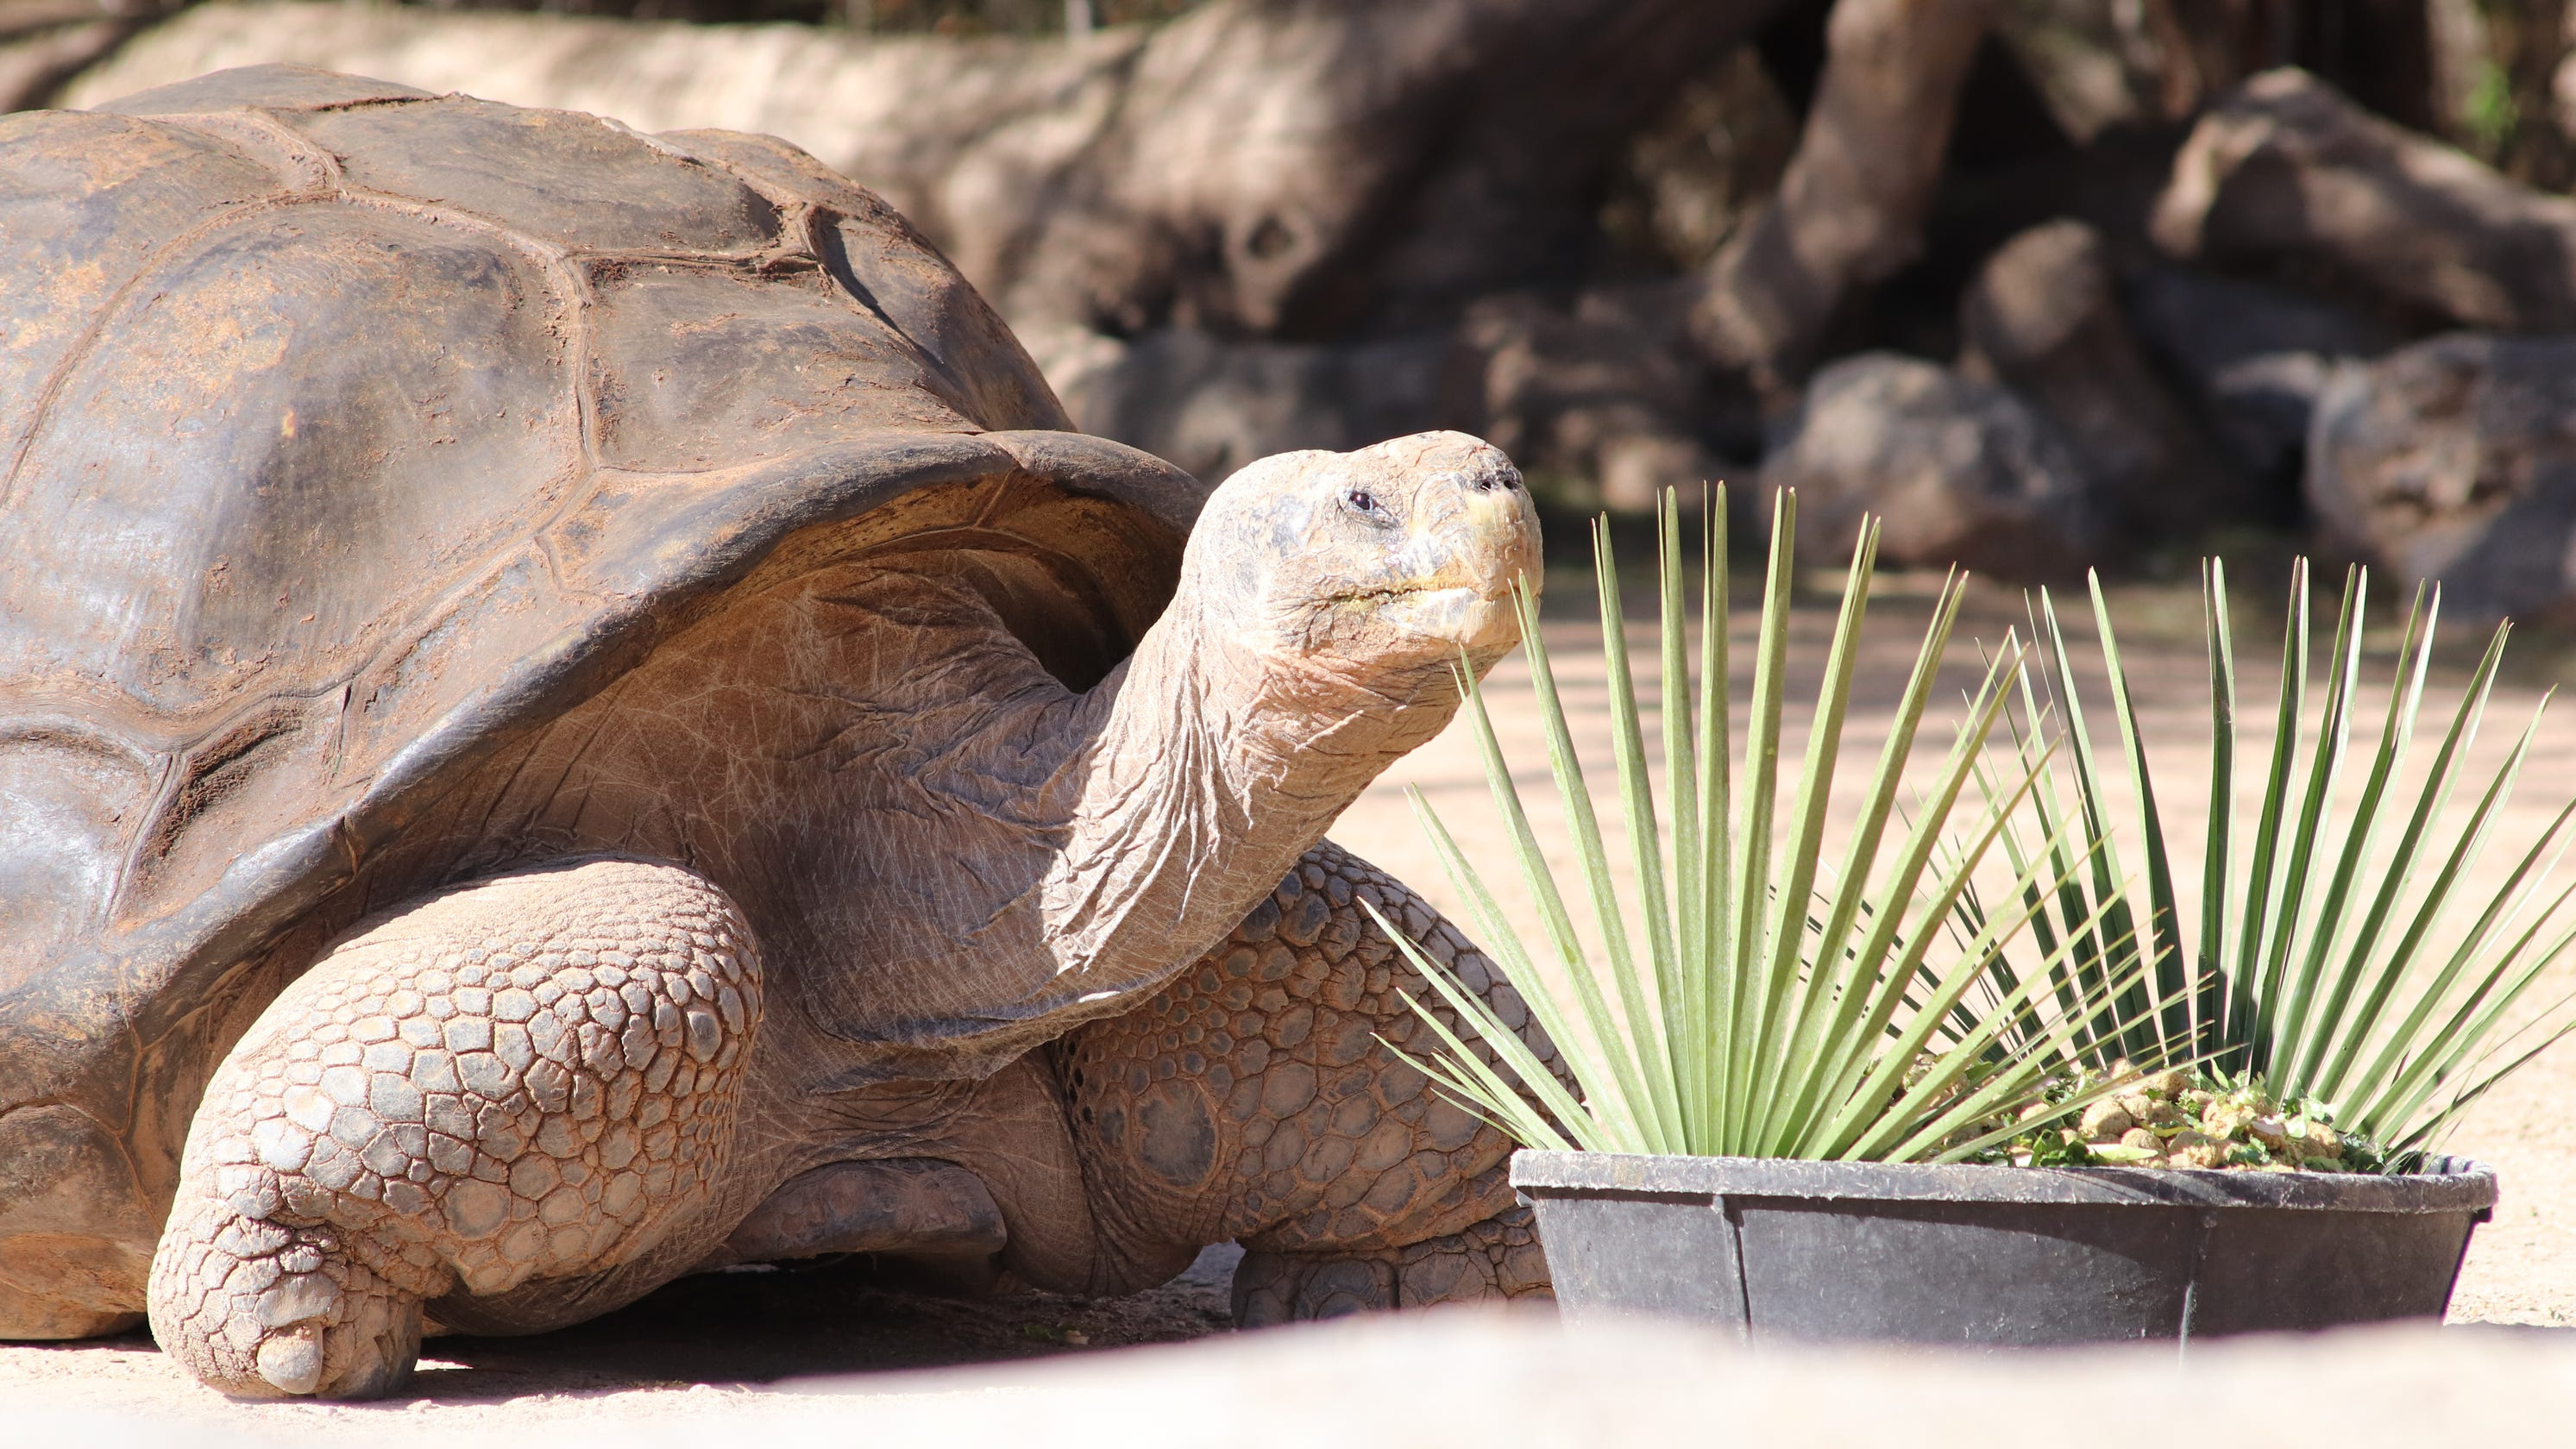 Ralph the Galapagos tortoise dies at 120 years old after surgery at the El Paso Zoo